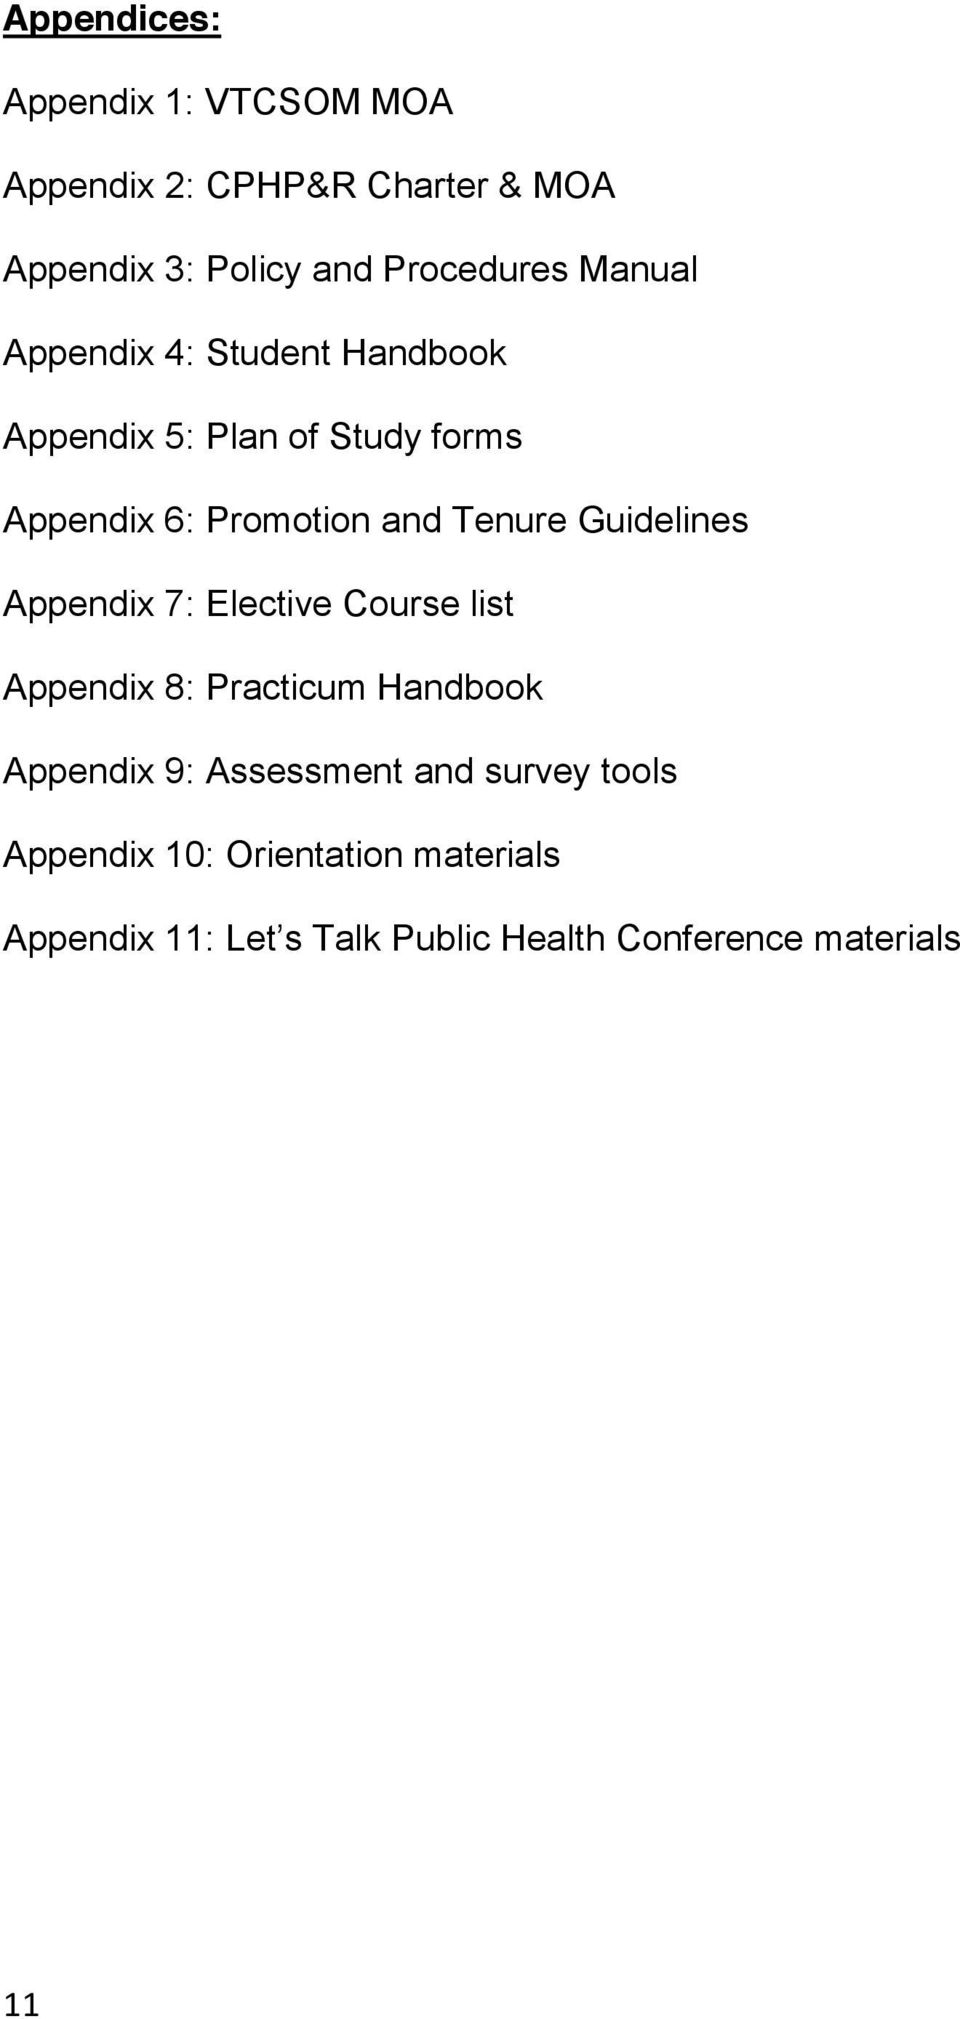 Promotion and Tenure Guidelines Appendix 7: Elective Course list Appendix 8: Practicum